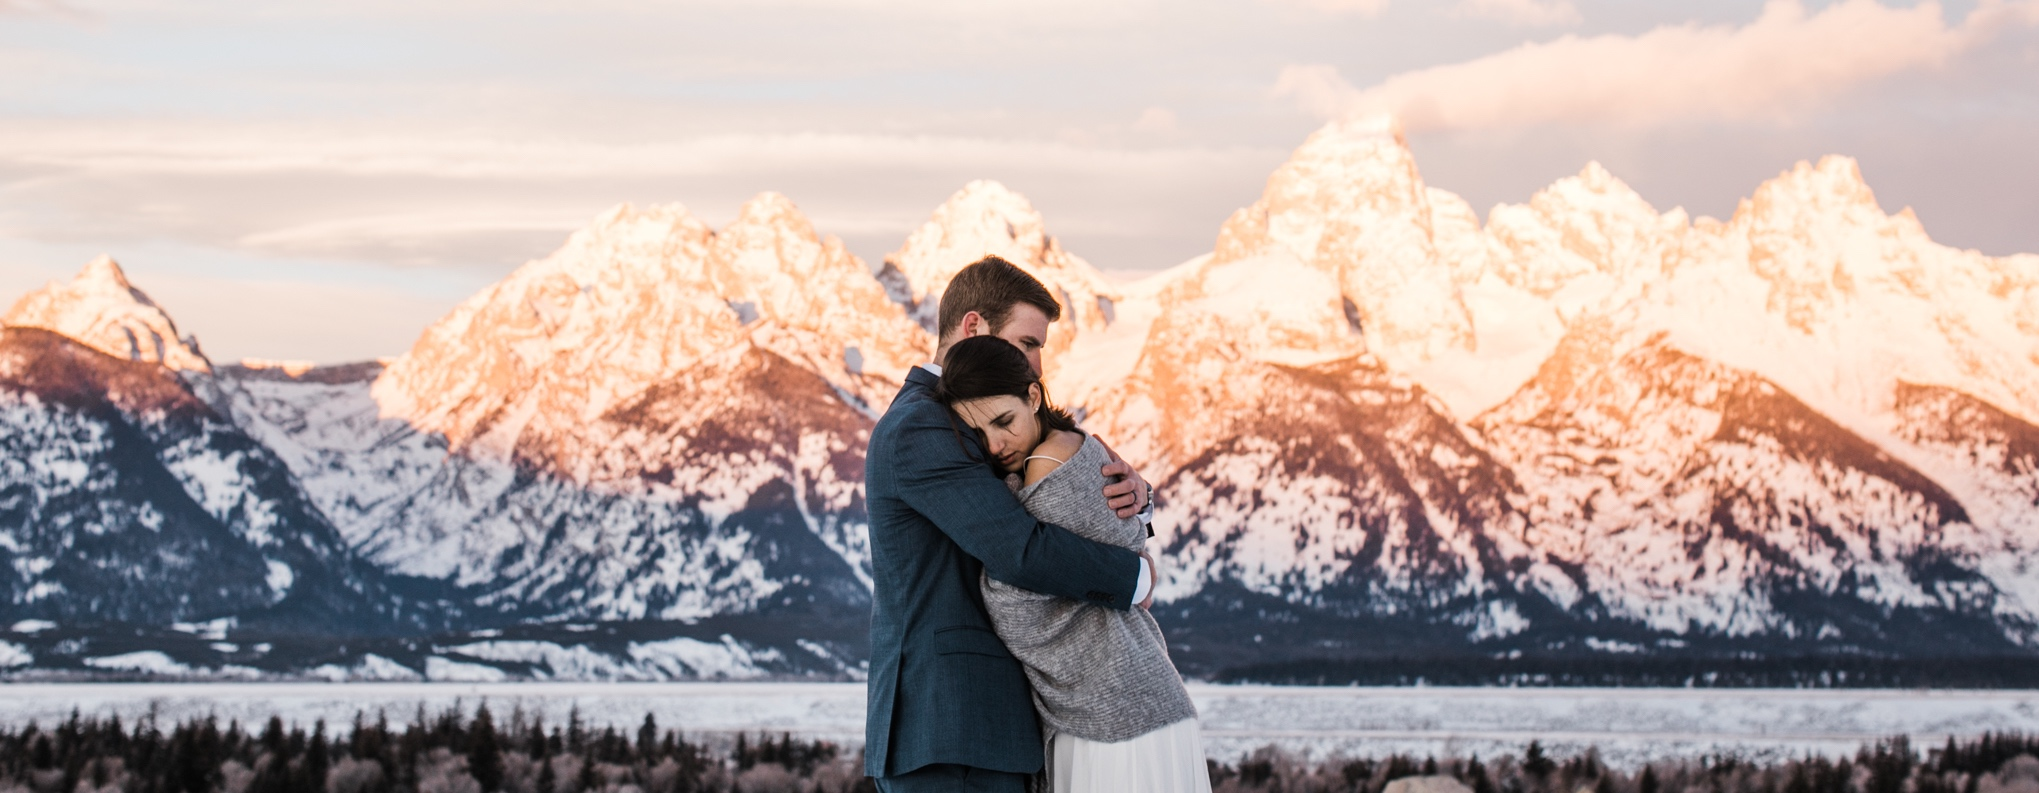 Elopement photography in Grand Teton National Park